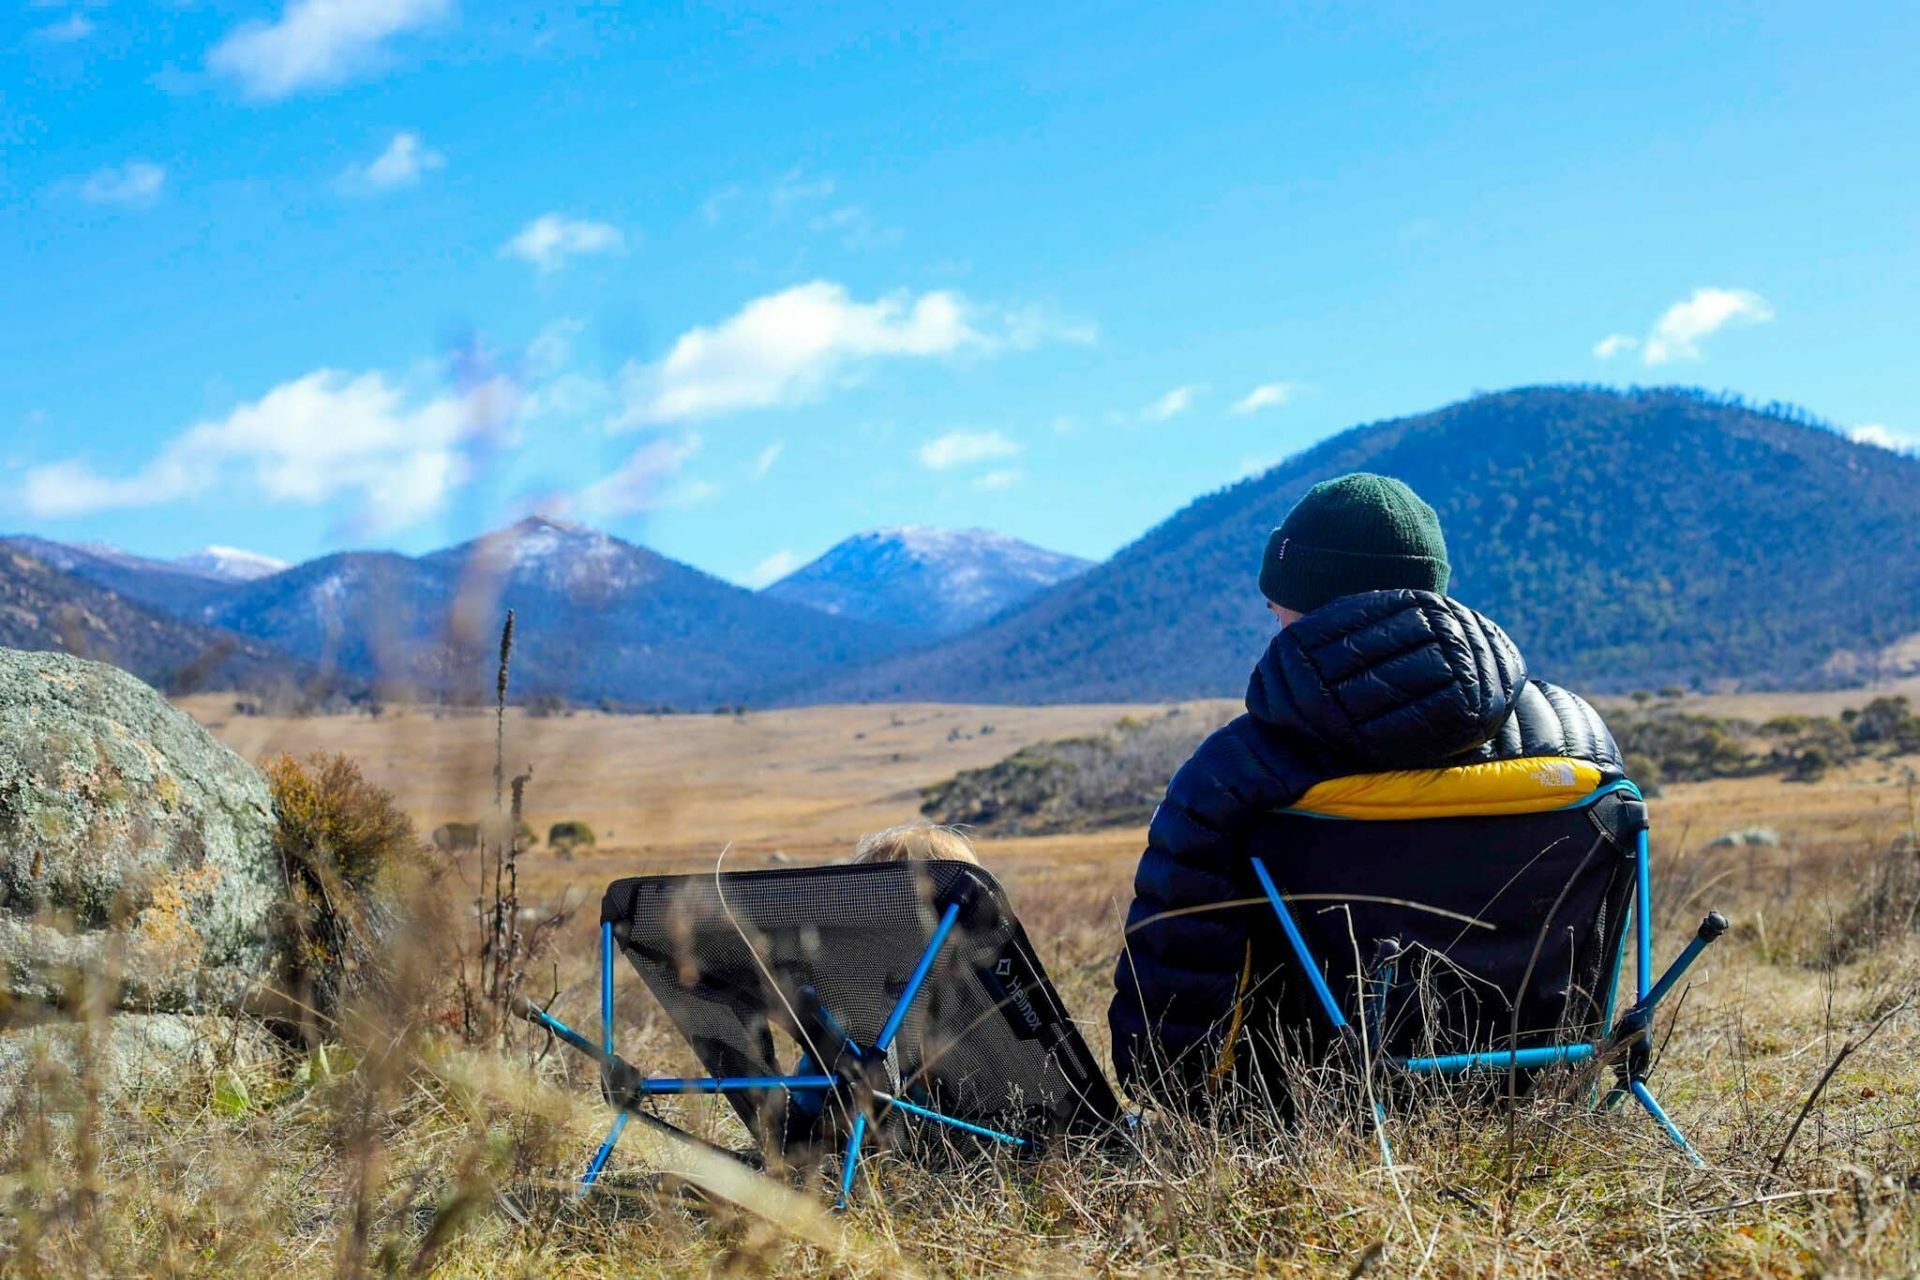 Helinox vs Aldi - Lightweight Camping Chair Comparisons, camping chair